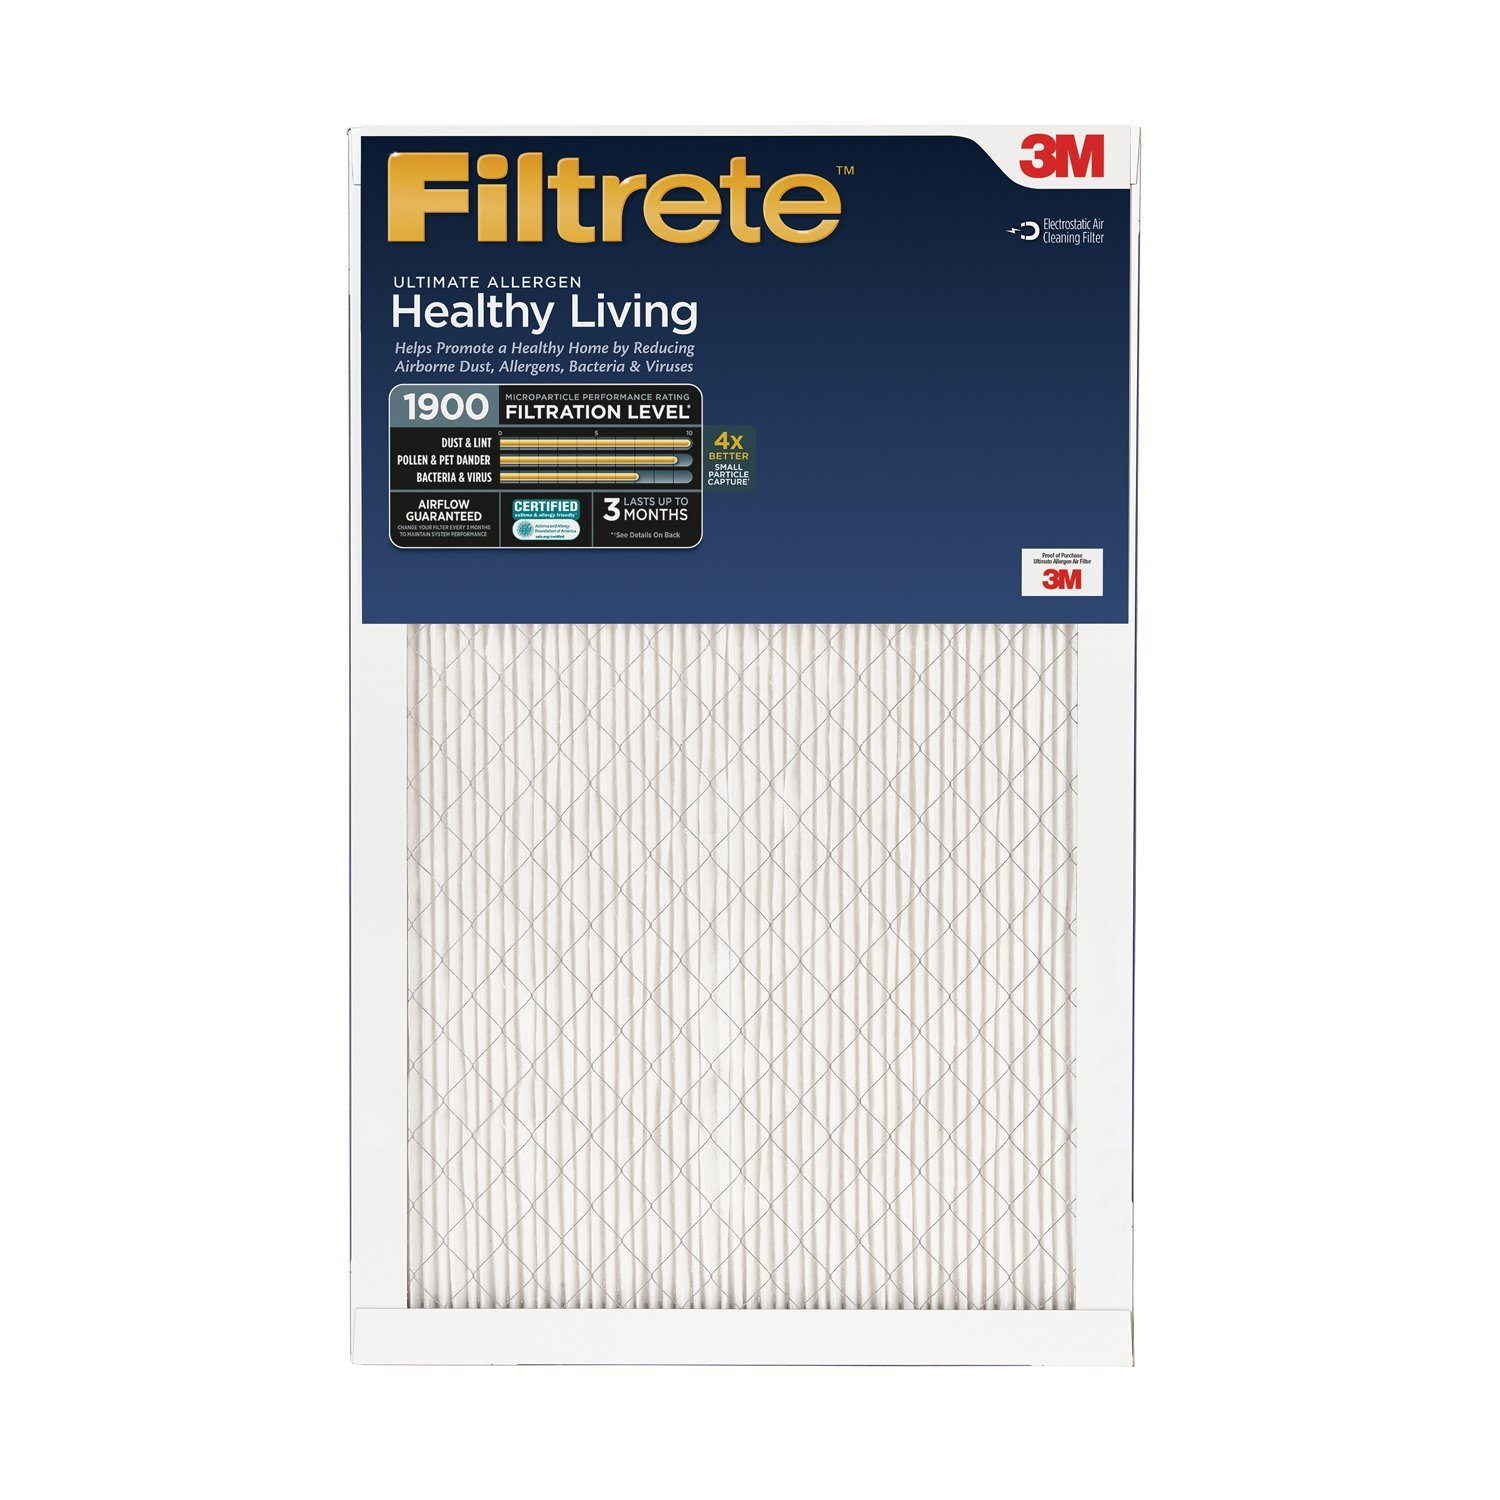 Filtrete Healthy Living Ultimate Allergen Reduction Filter, MPR 1900, 18 x 18 x 1-Inches, 6-Pack